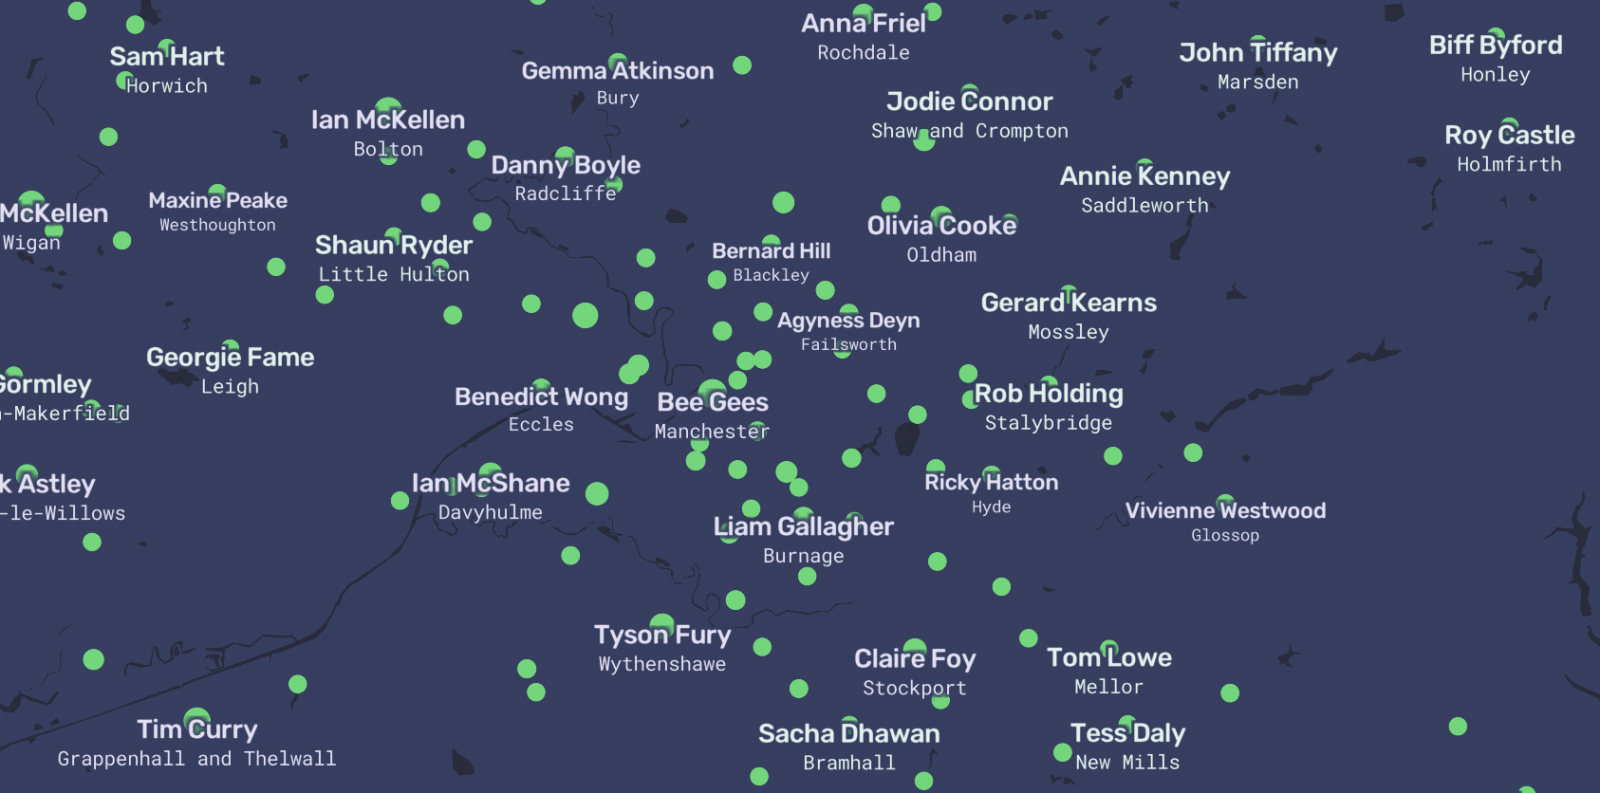 Map shows famous people linked to each Greater Manchester borough, The Manc